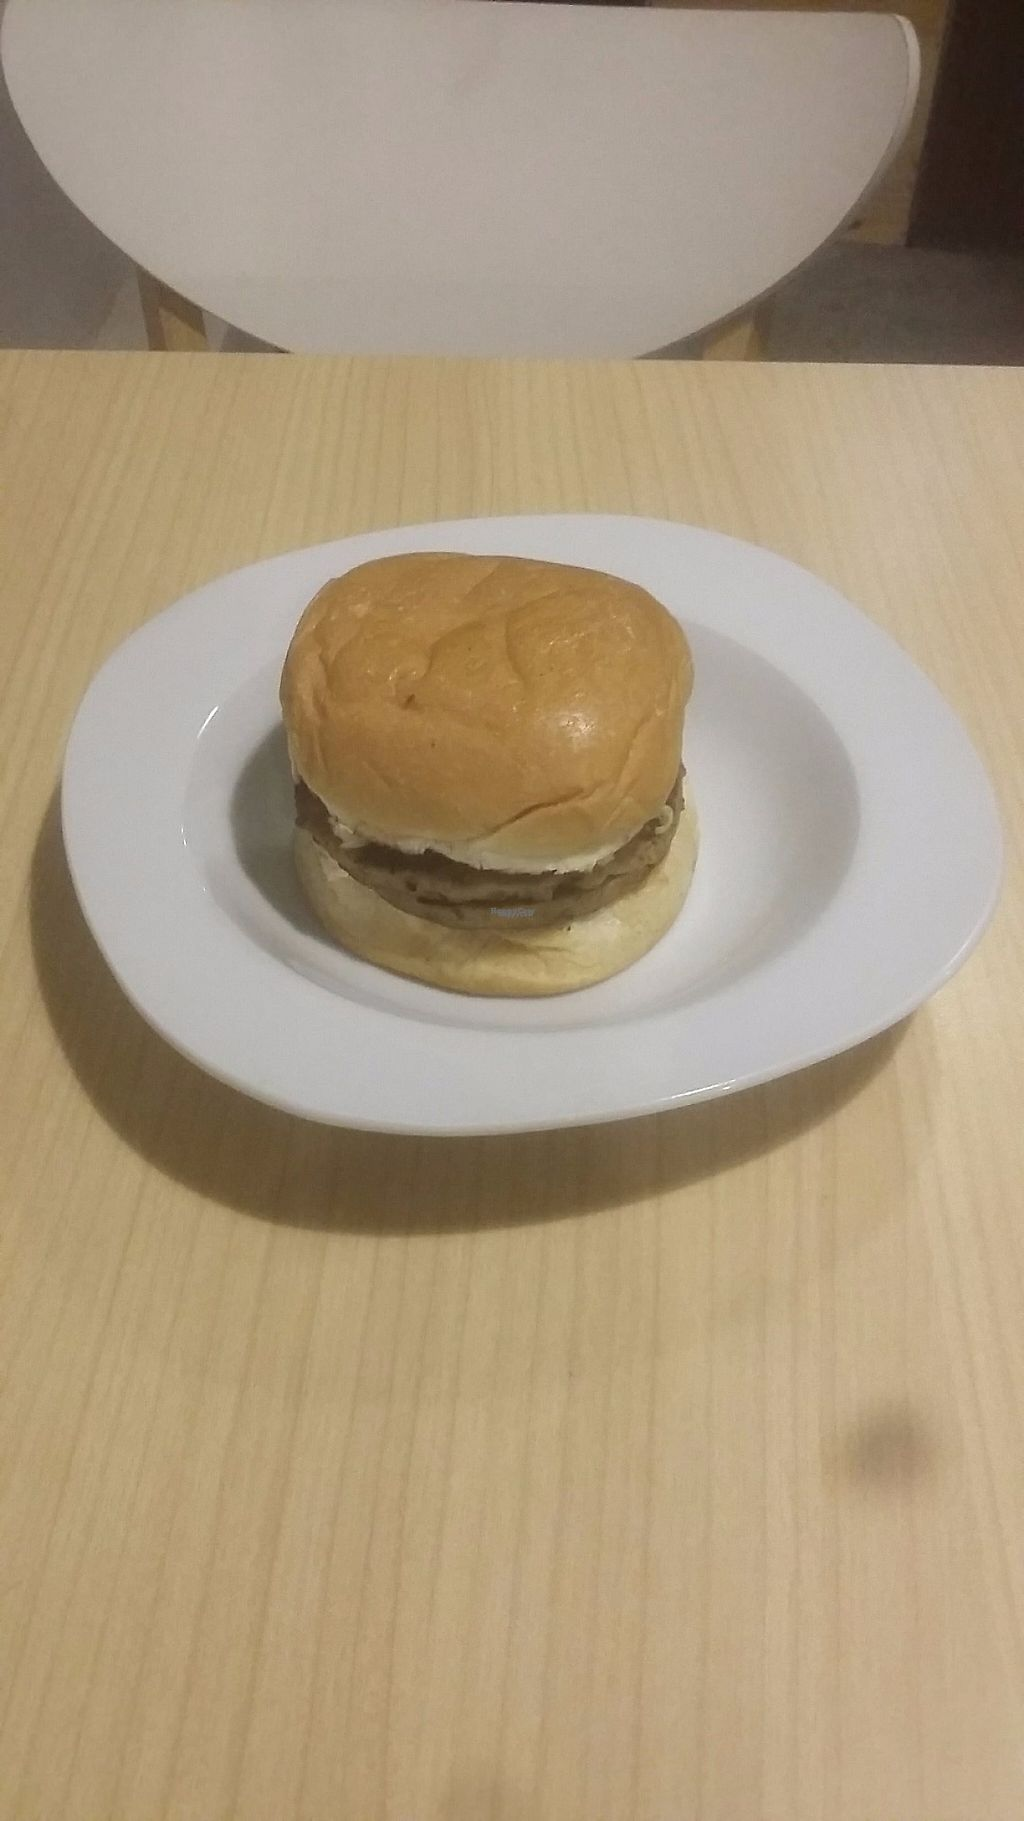 "Photo of Veggielicious Cafe  by <a href=""/members/profile/samlowry"">samlowry</a> <br/>A top-cold burger :) <br/> January 15, 2017  - <a href='/contact/abuse/image/80636/212257'>Report</a>"